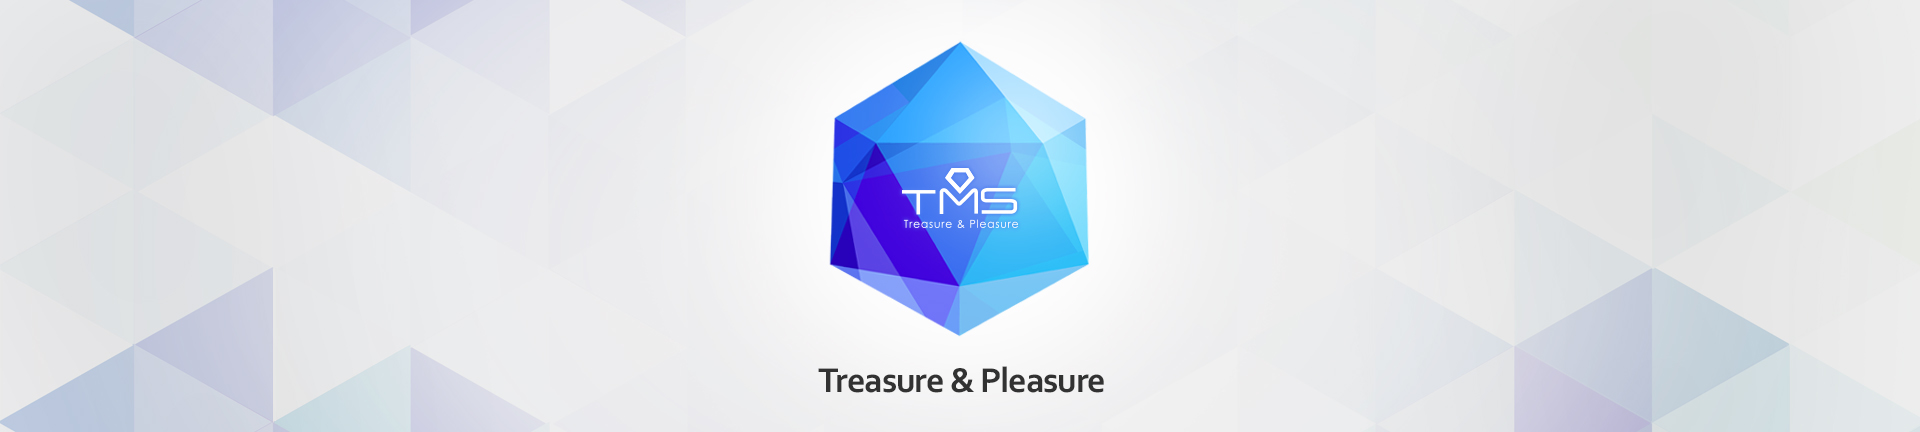 TMS Treasure & Pleasure